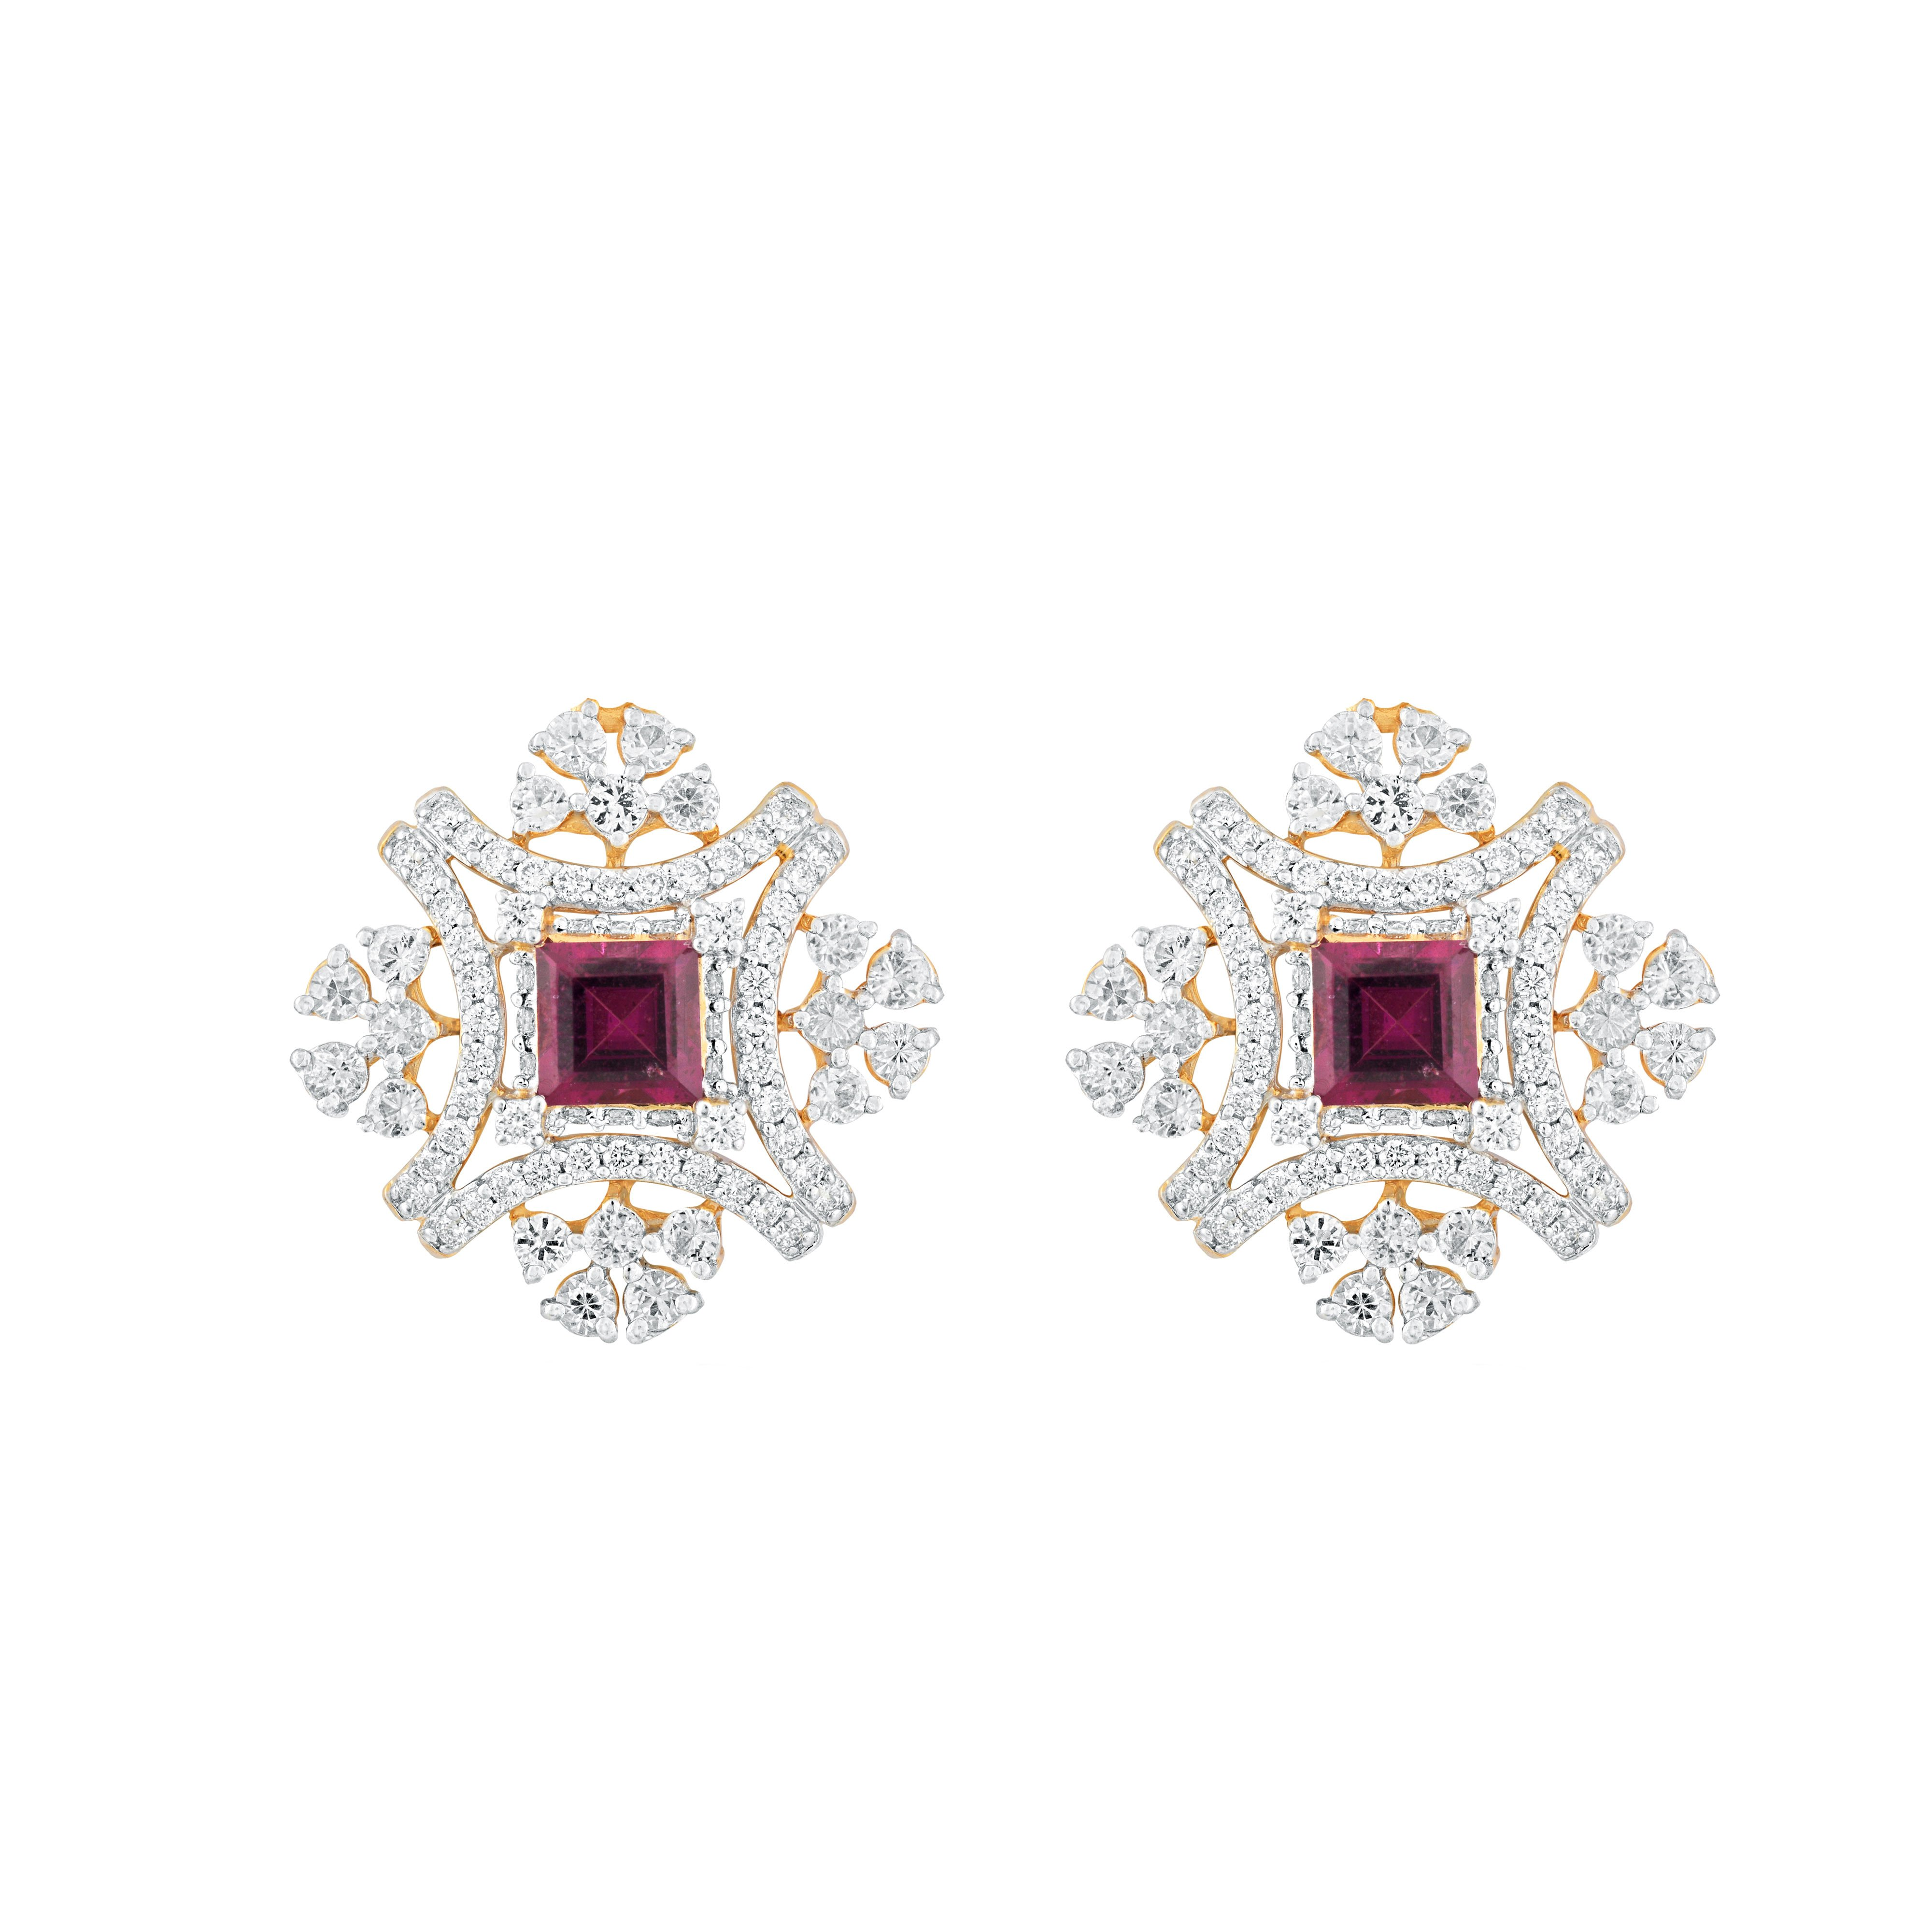 e3c583a675225 Rhodolite Cut and White Sapphire Floral Diamond Earring